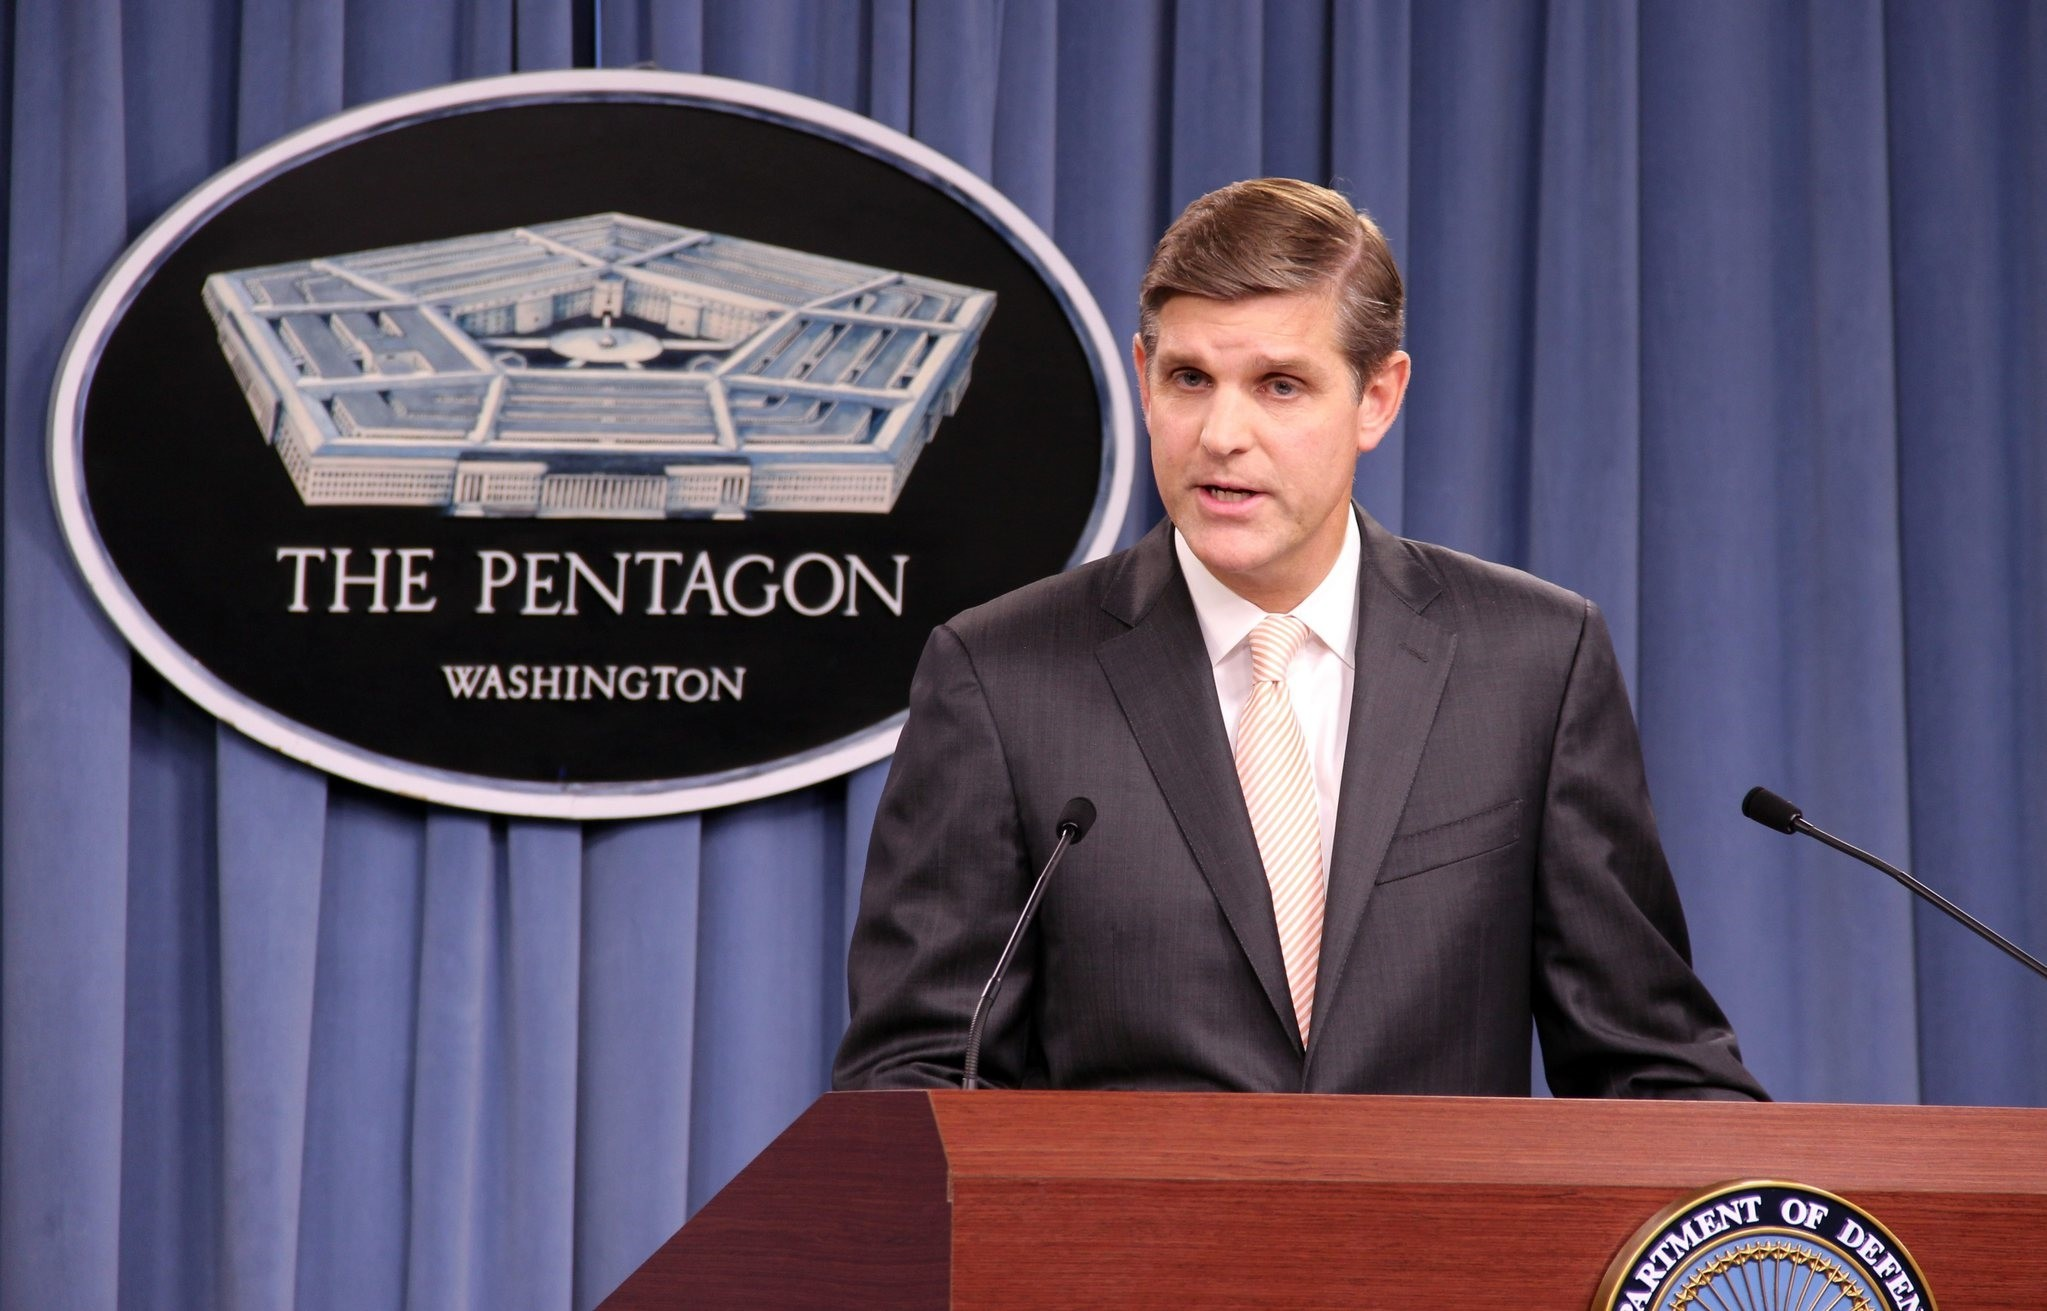 Pentagon spokesperson Peter Cook speaks to reporters during a press conference in  Washington, D.C. (AA Photo)